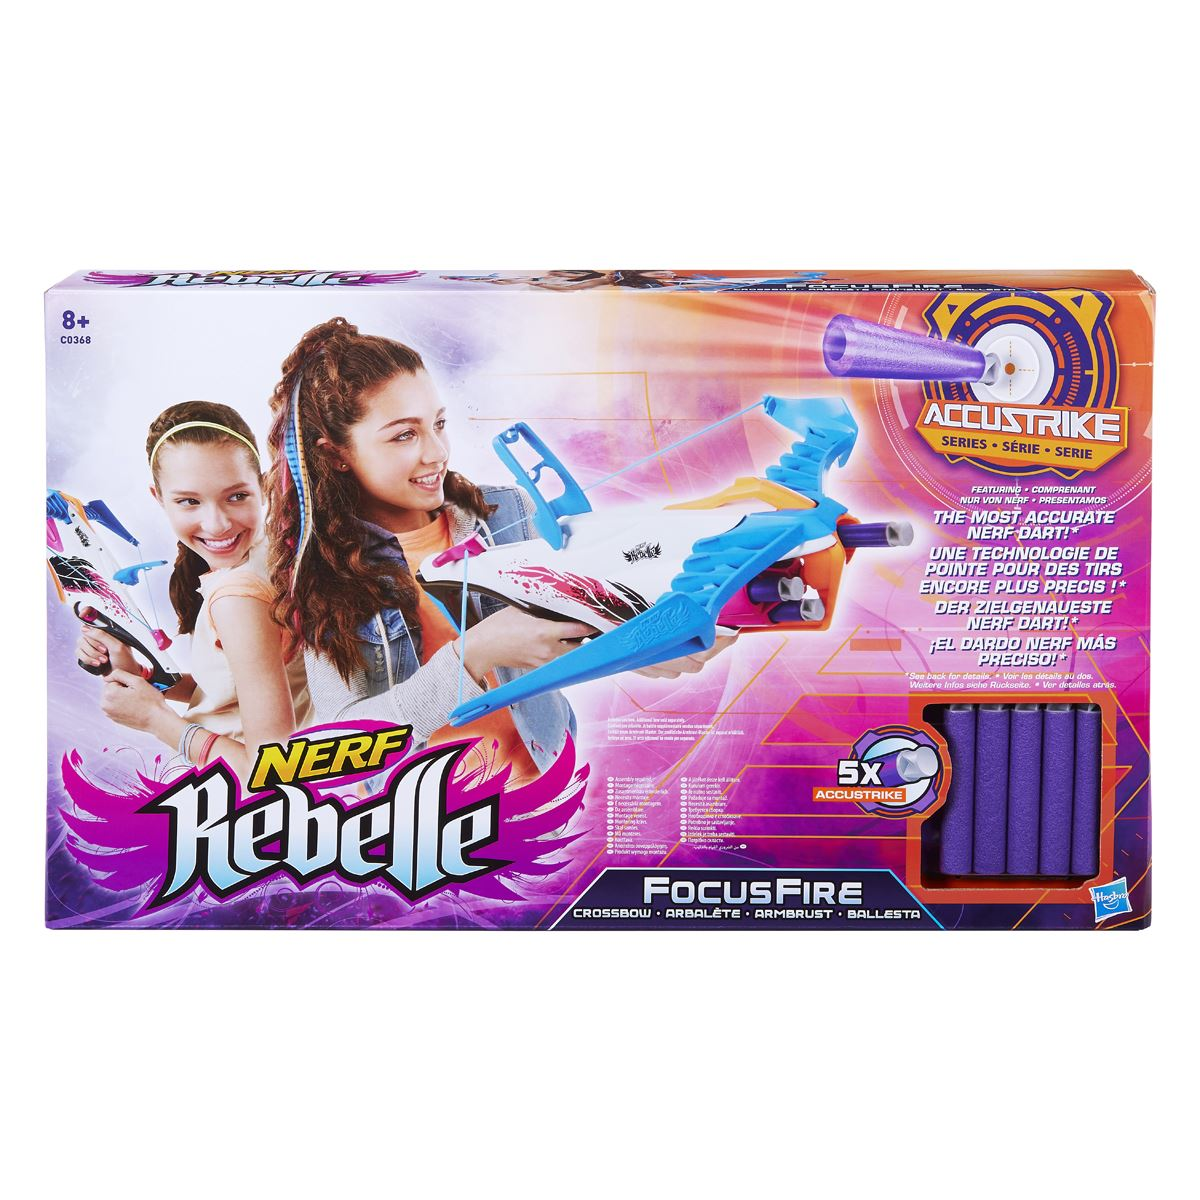 Nerf rebelle focus fire  - Sanborns